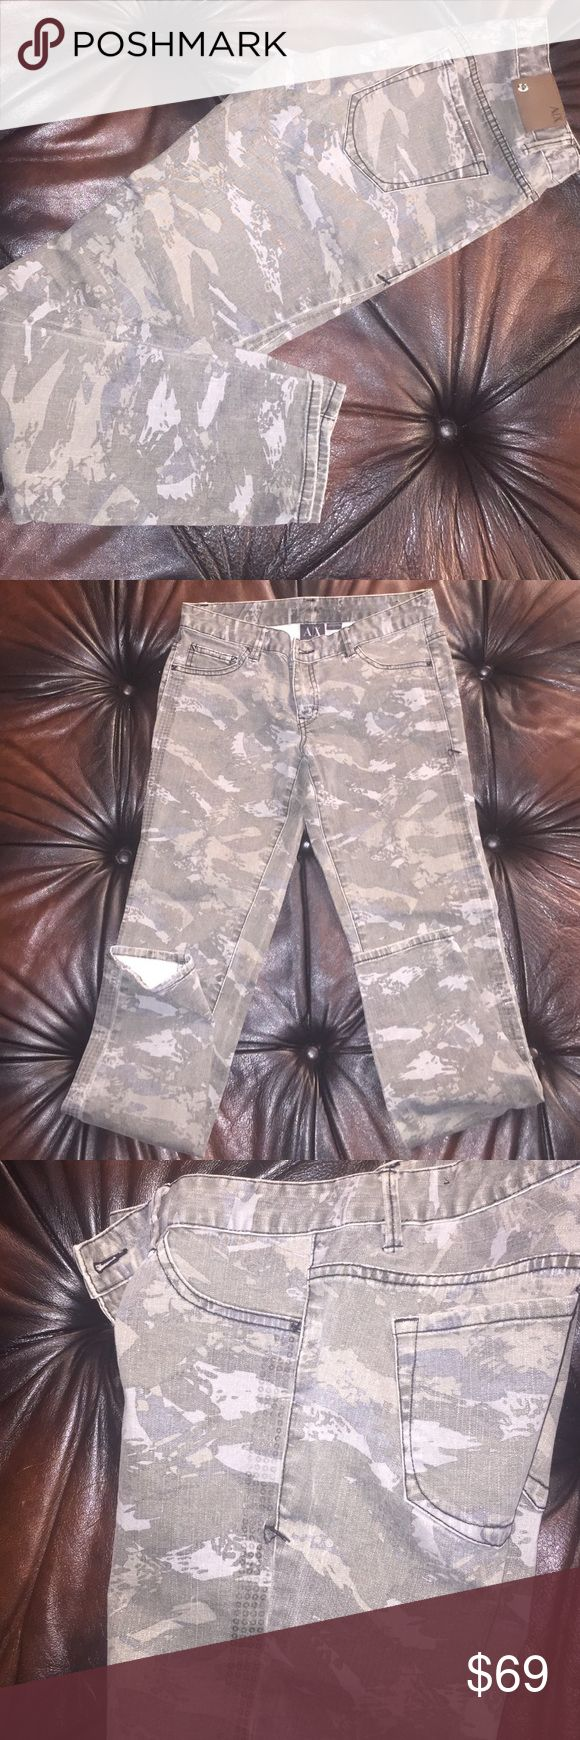 Selling this A/X side Embellished camouflage print skinny jeans on Poshmark! My username is: rsveta. #shopmycloset #poshmark #fashion #shopping #style #forsale #Armani Exchange #Denim